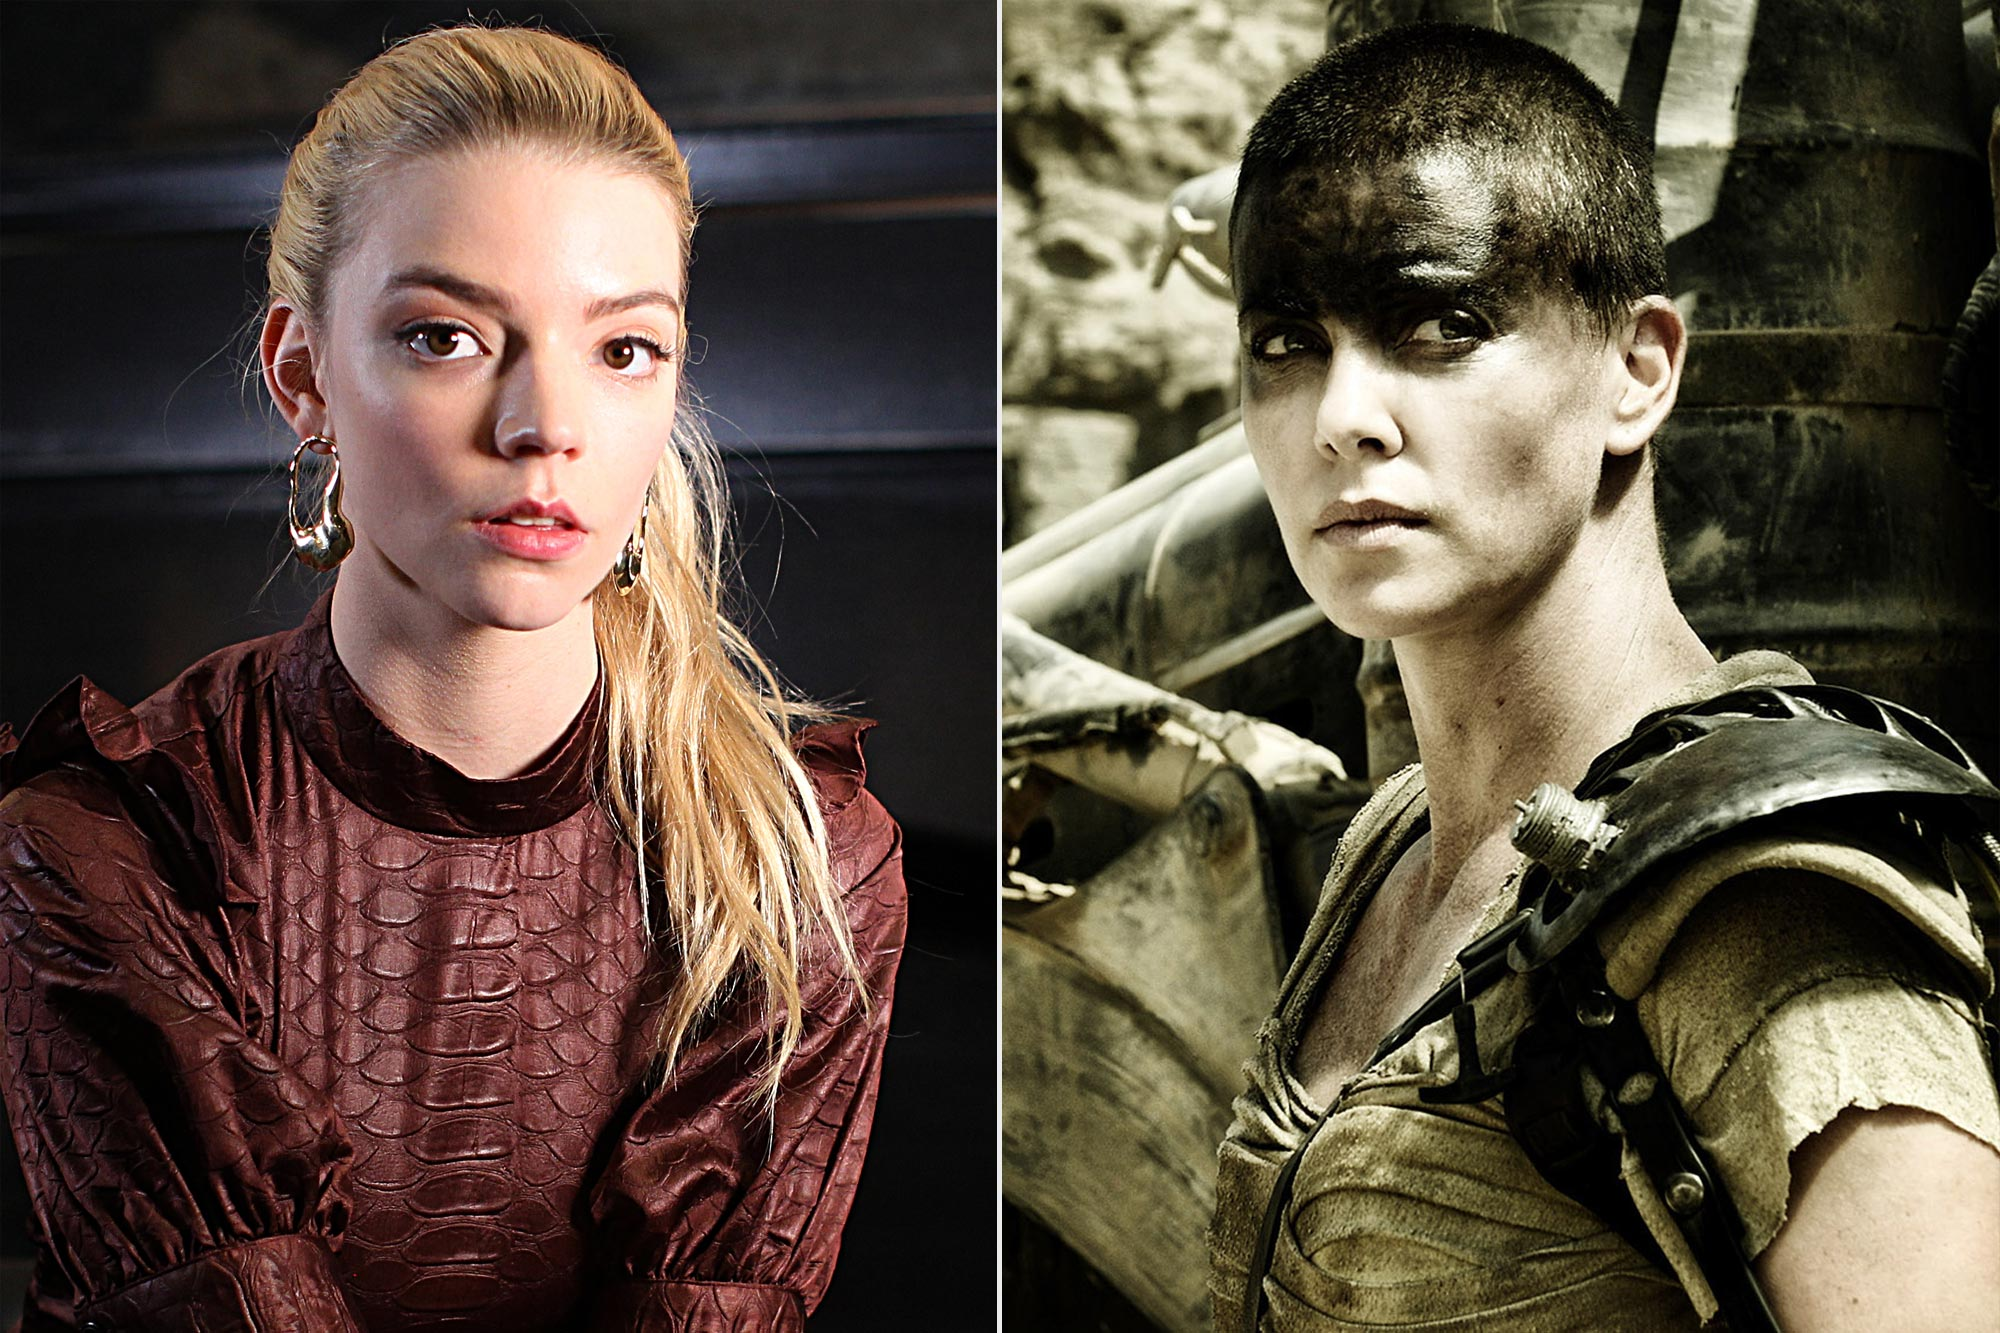 Anya Taylor-Joy and Charlize Theron in Mad Max: Fury Road